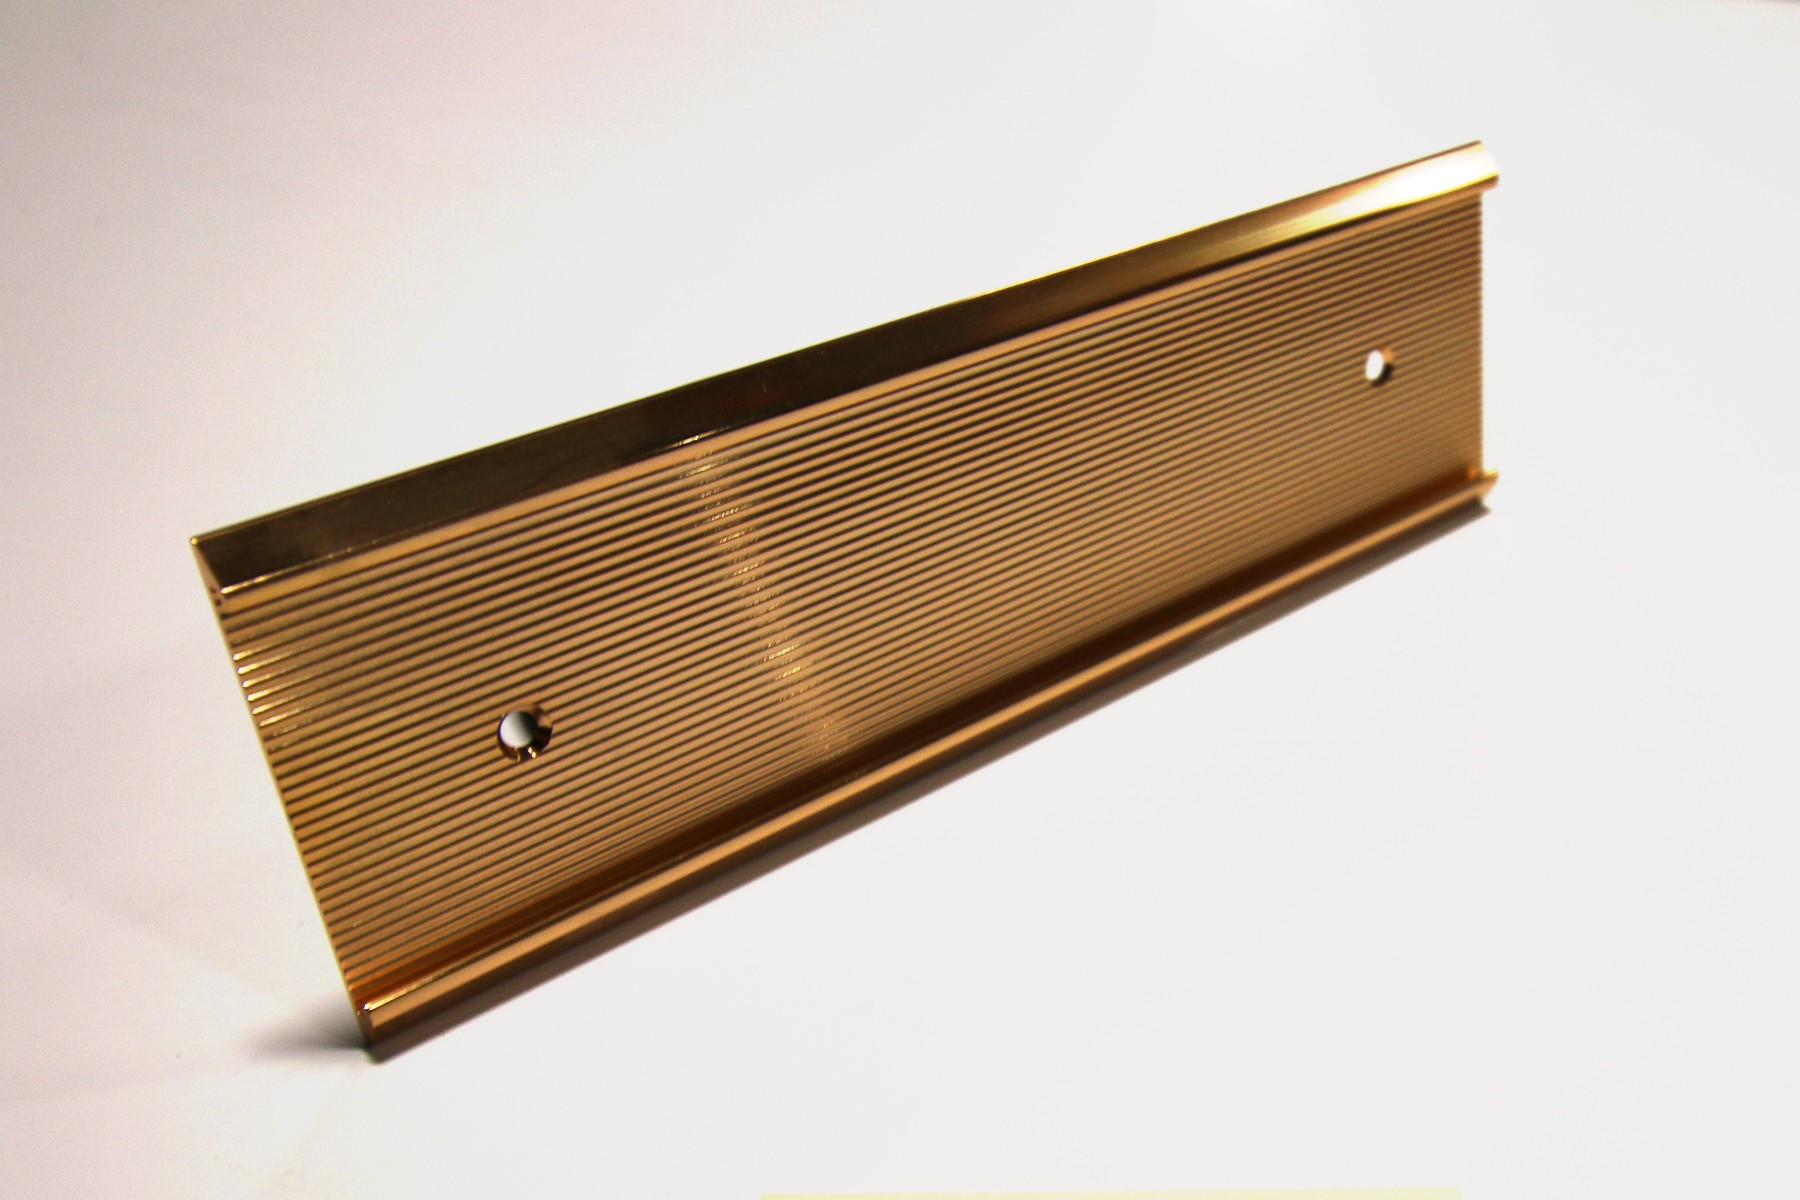 2 x 8 Ribbed Wall Holder, Gold